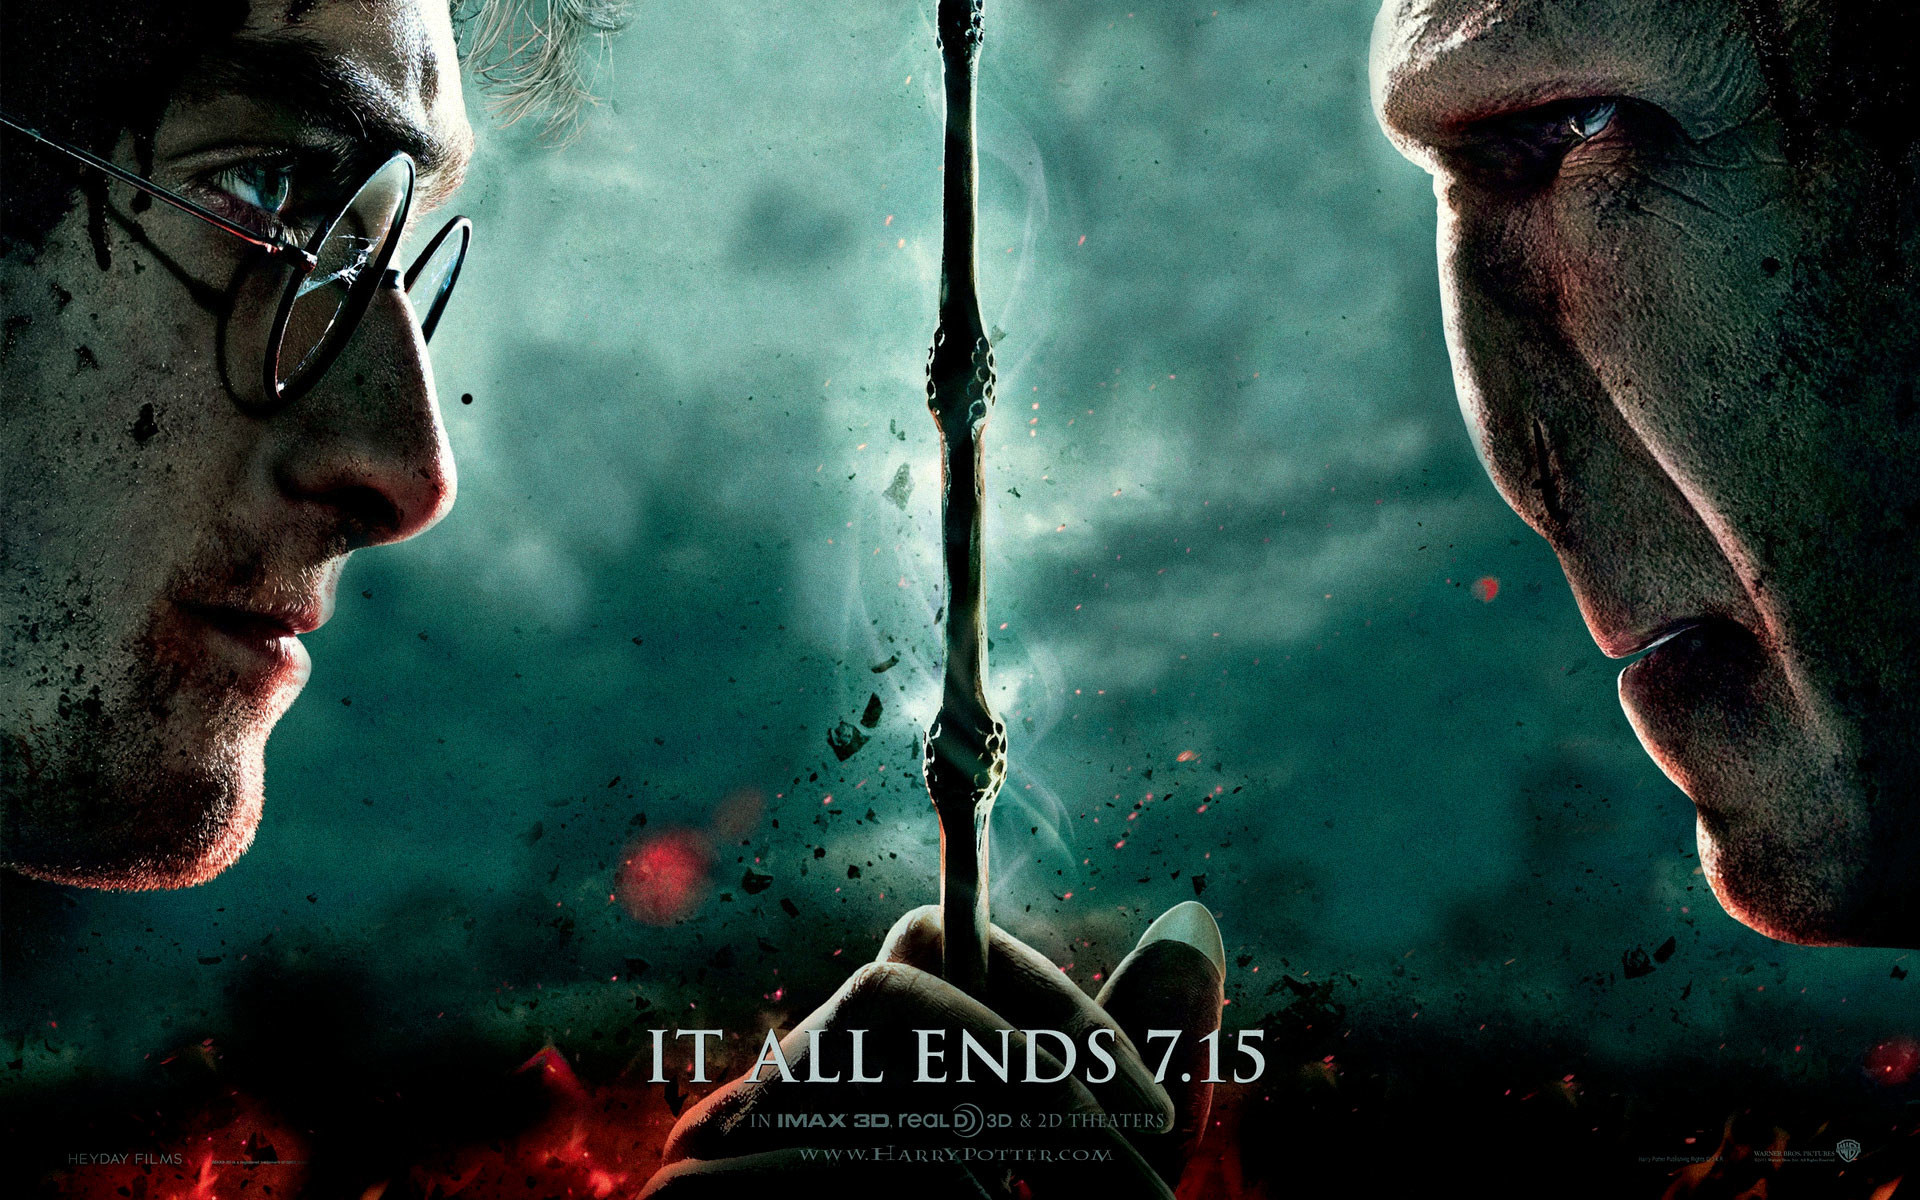 Harry Potter 7 Part 2 Wallpapers   HD Wallpapers